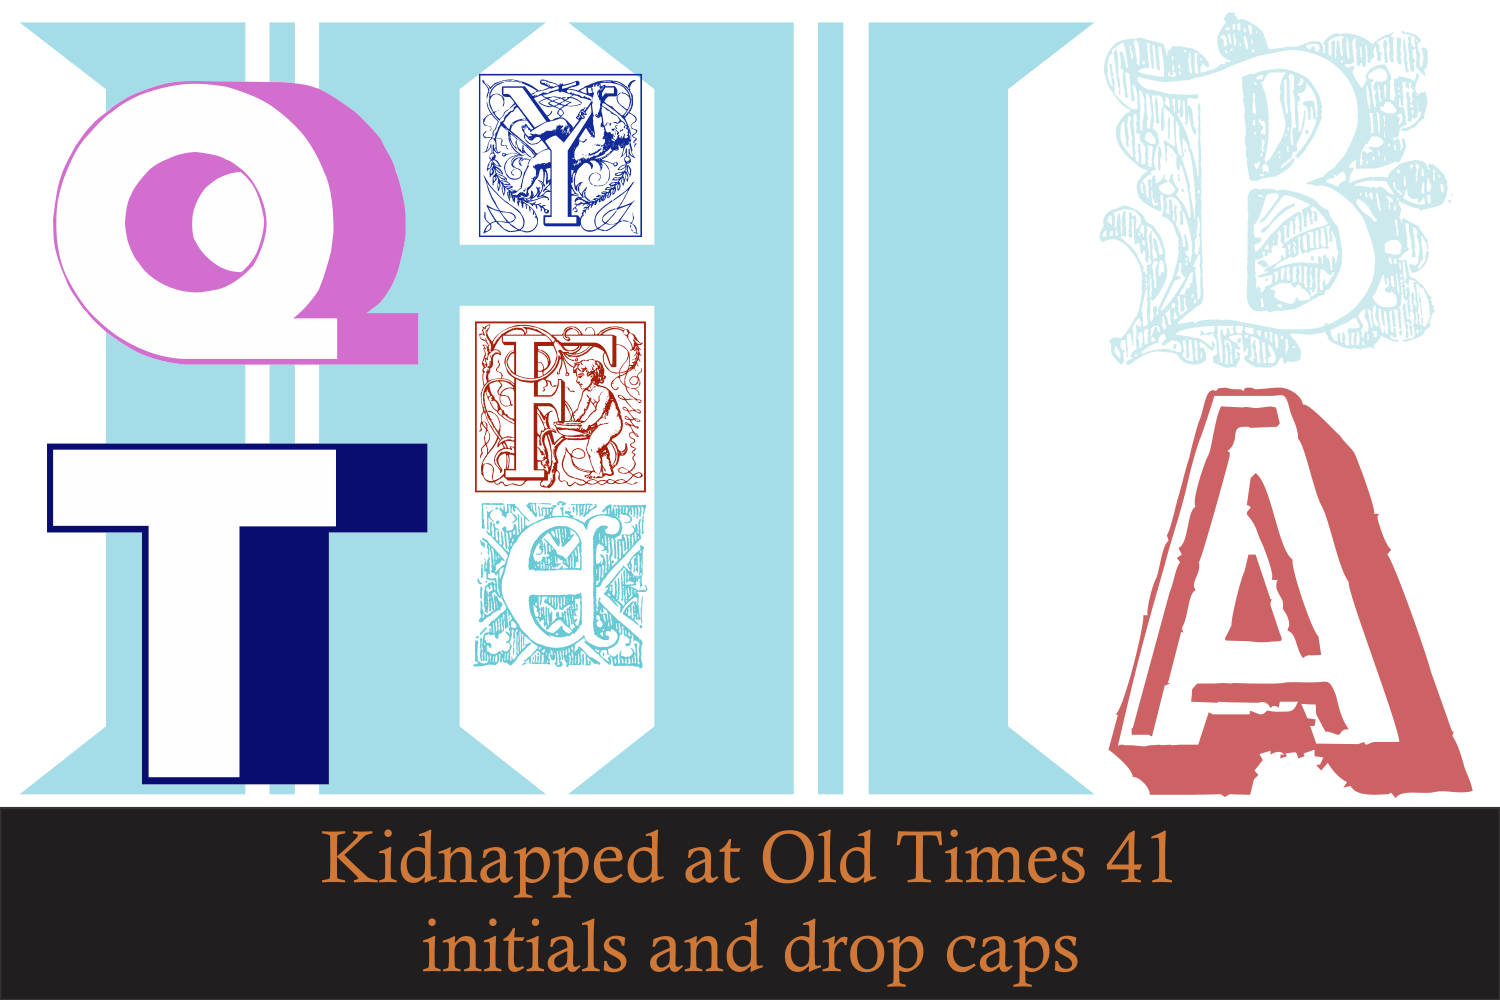 Kidnapped at Old Times 41 example image 1